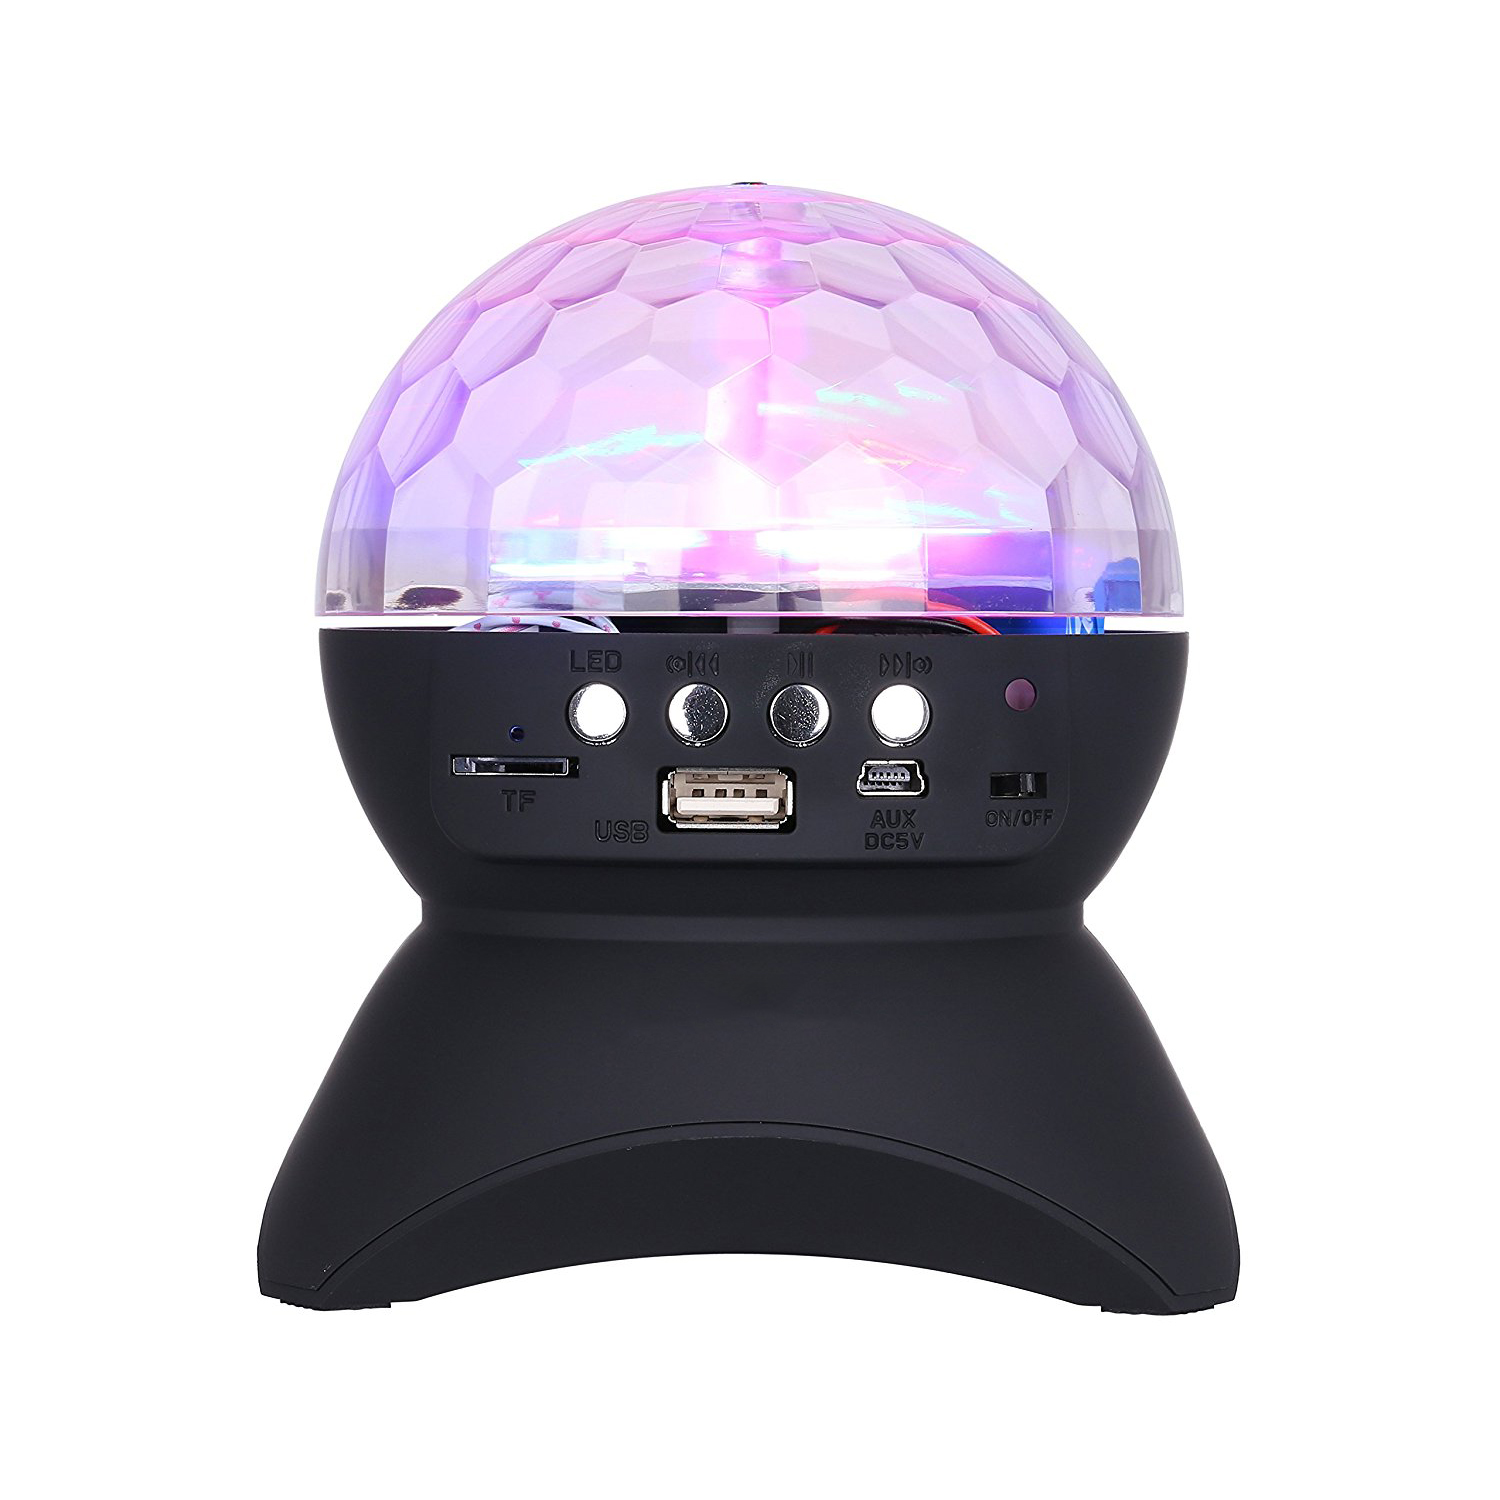 CSS Led Stage Light with Wireless Bluetooth Speaker Support TF Card , Music , FM radio with USB for Parties , DJ etc. - Black kubei 290 wireless bluetooth v3 0 speaker w fm radio black